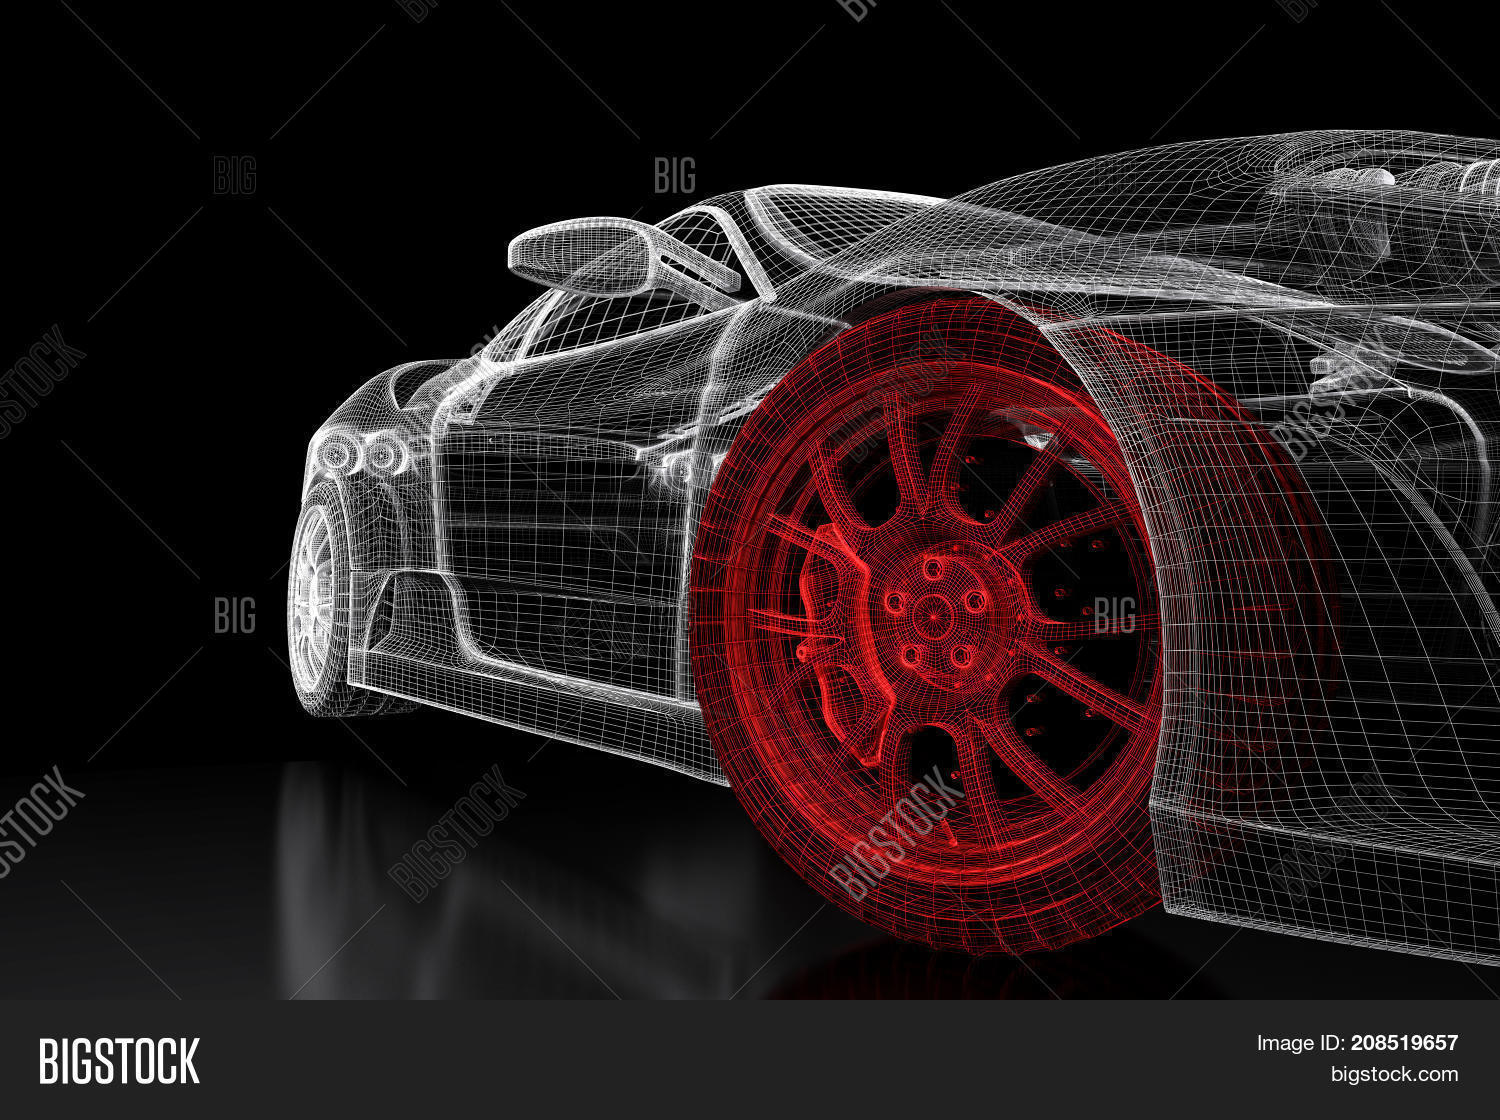 Car vehicle 3d image photo free trial bigstock car vehicle 3d blueprint mesh model with a red wheel tire on a black background malvernweather Gallery